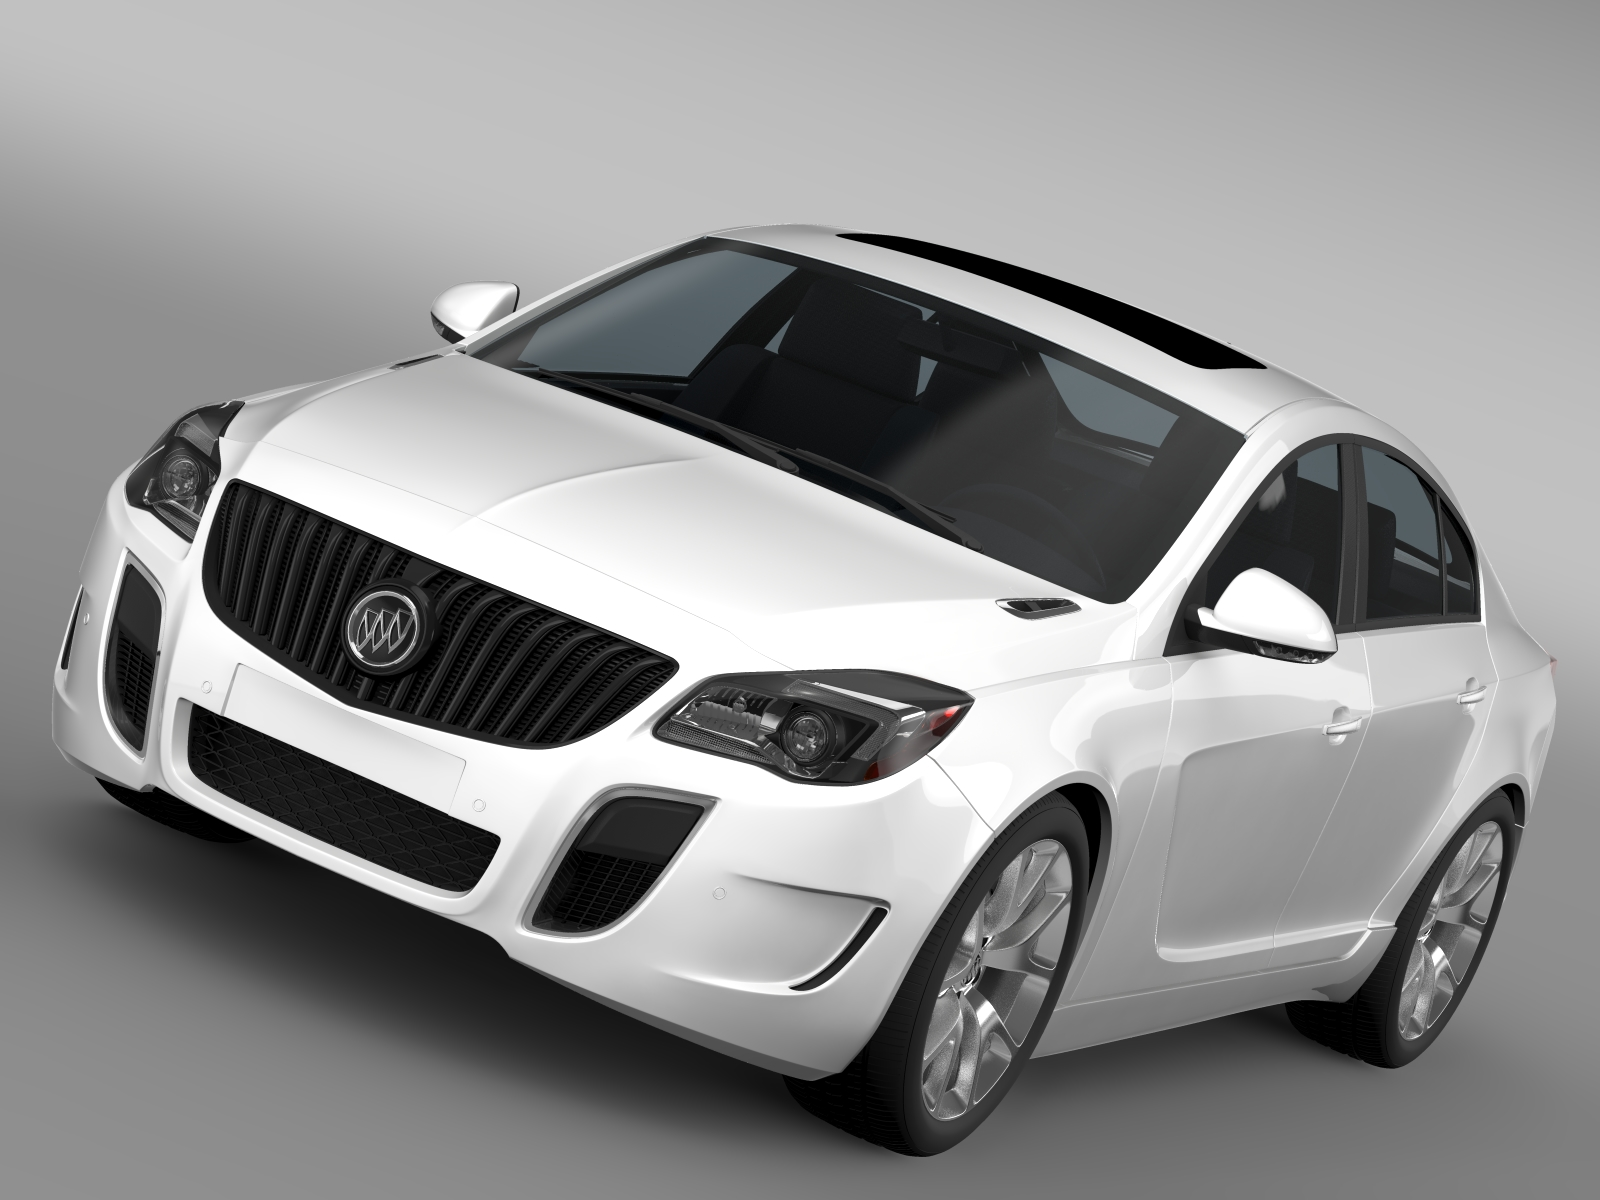 buick regal gs 2015 3d model 3ds max fbx c4d lwo ma mb hrc xsi obj 215196